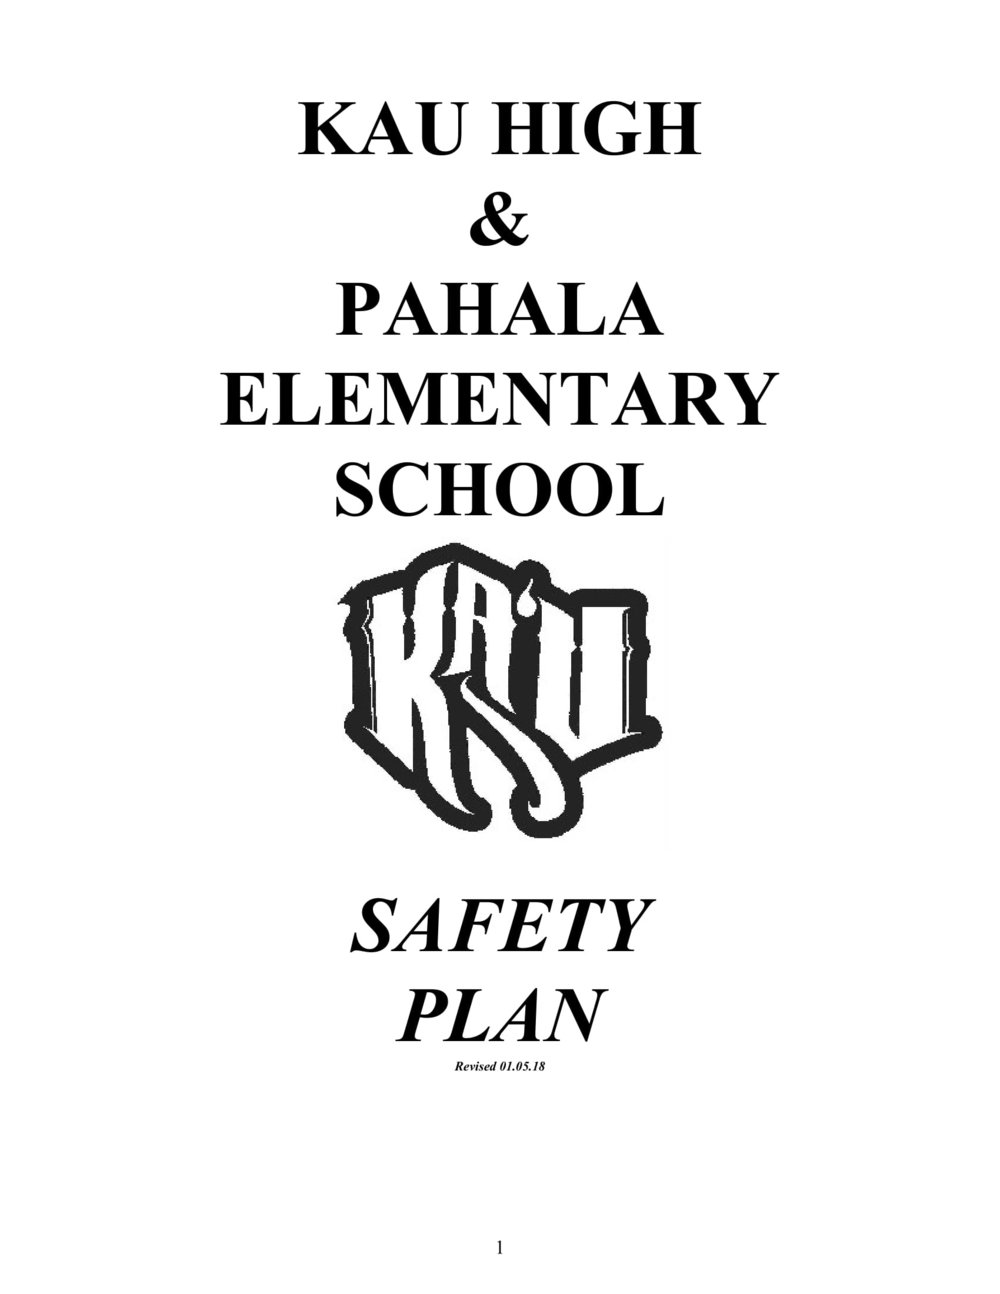 Safety Plan